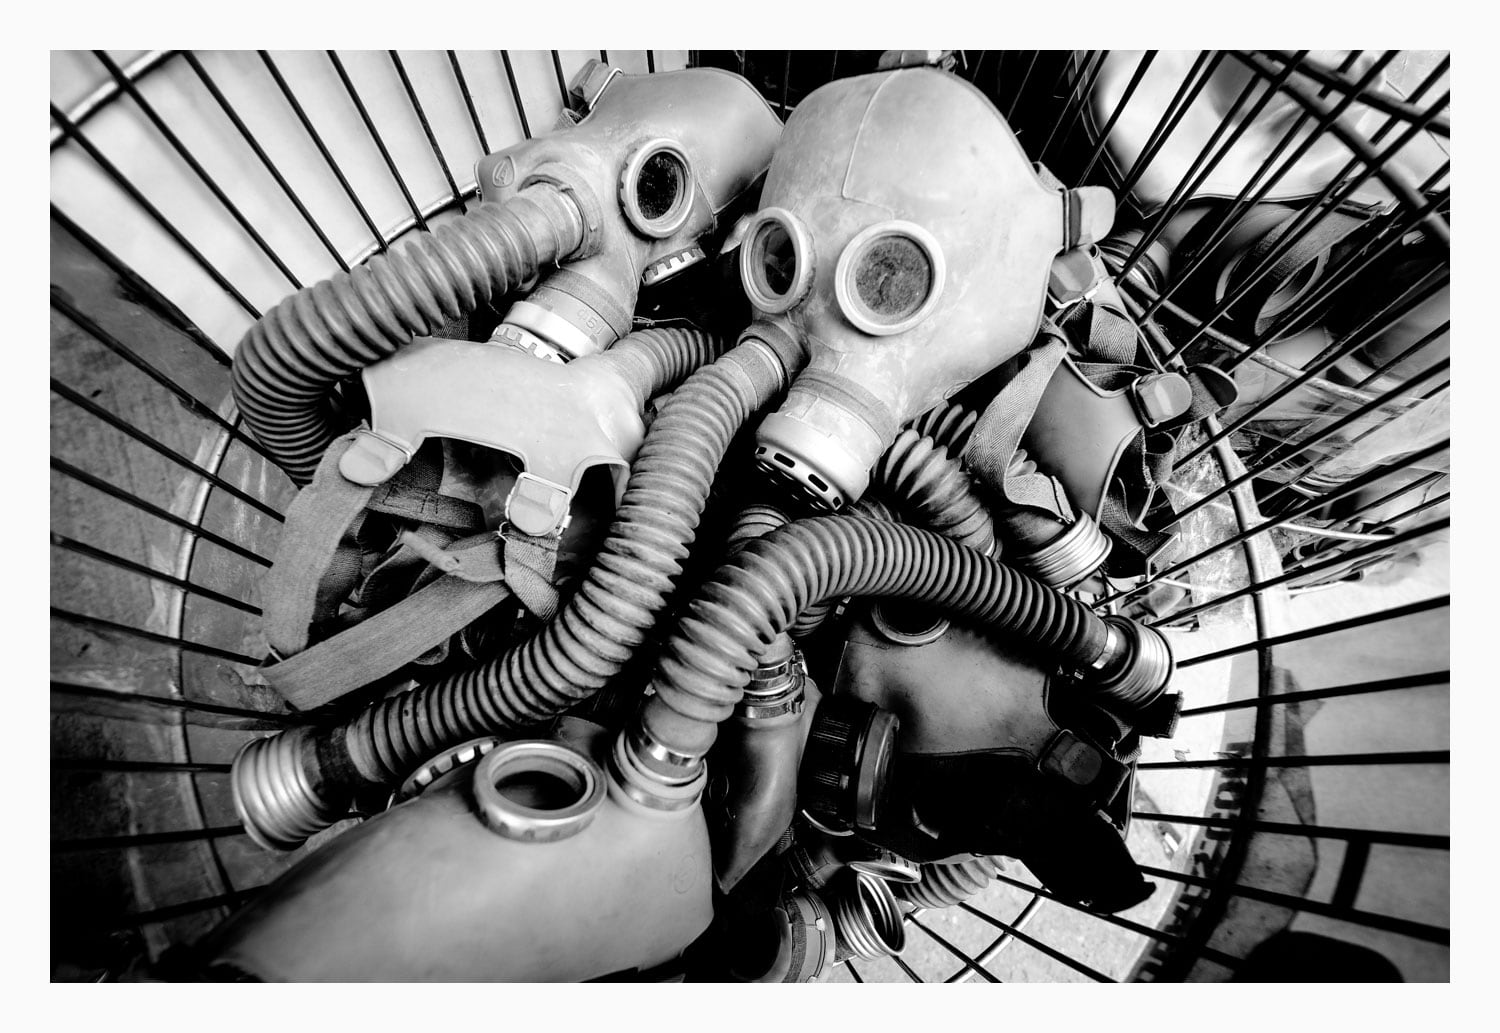 Jam an ultra-wide angle lens ina wire basket full of gas masks and you're sure to get an interesting image